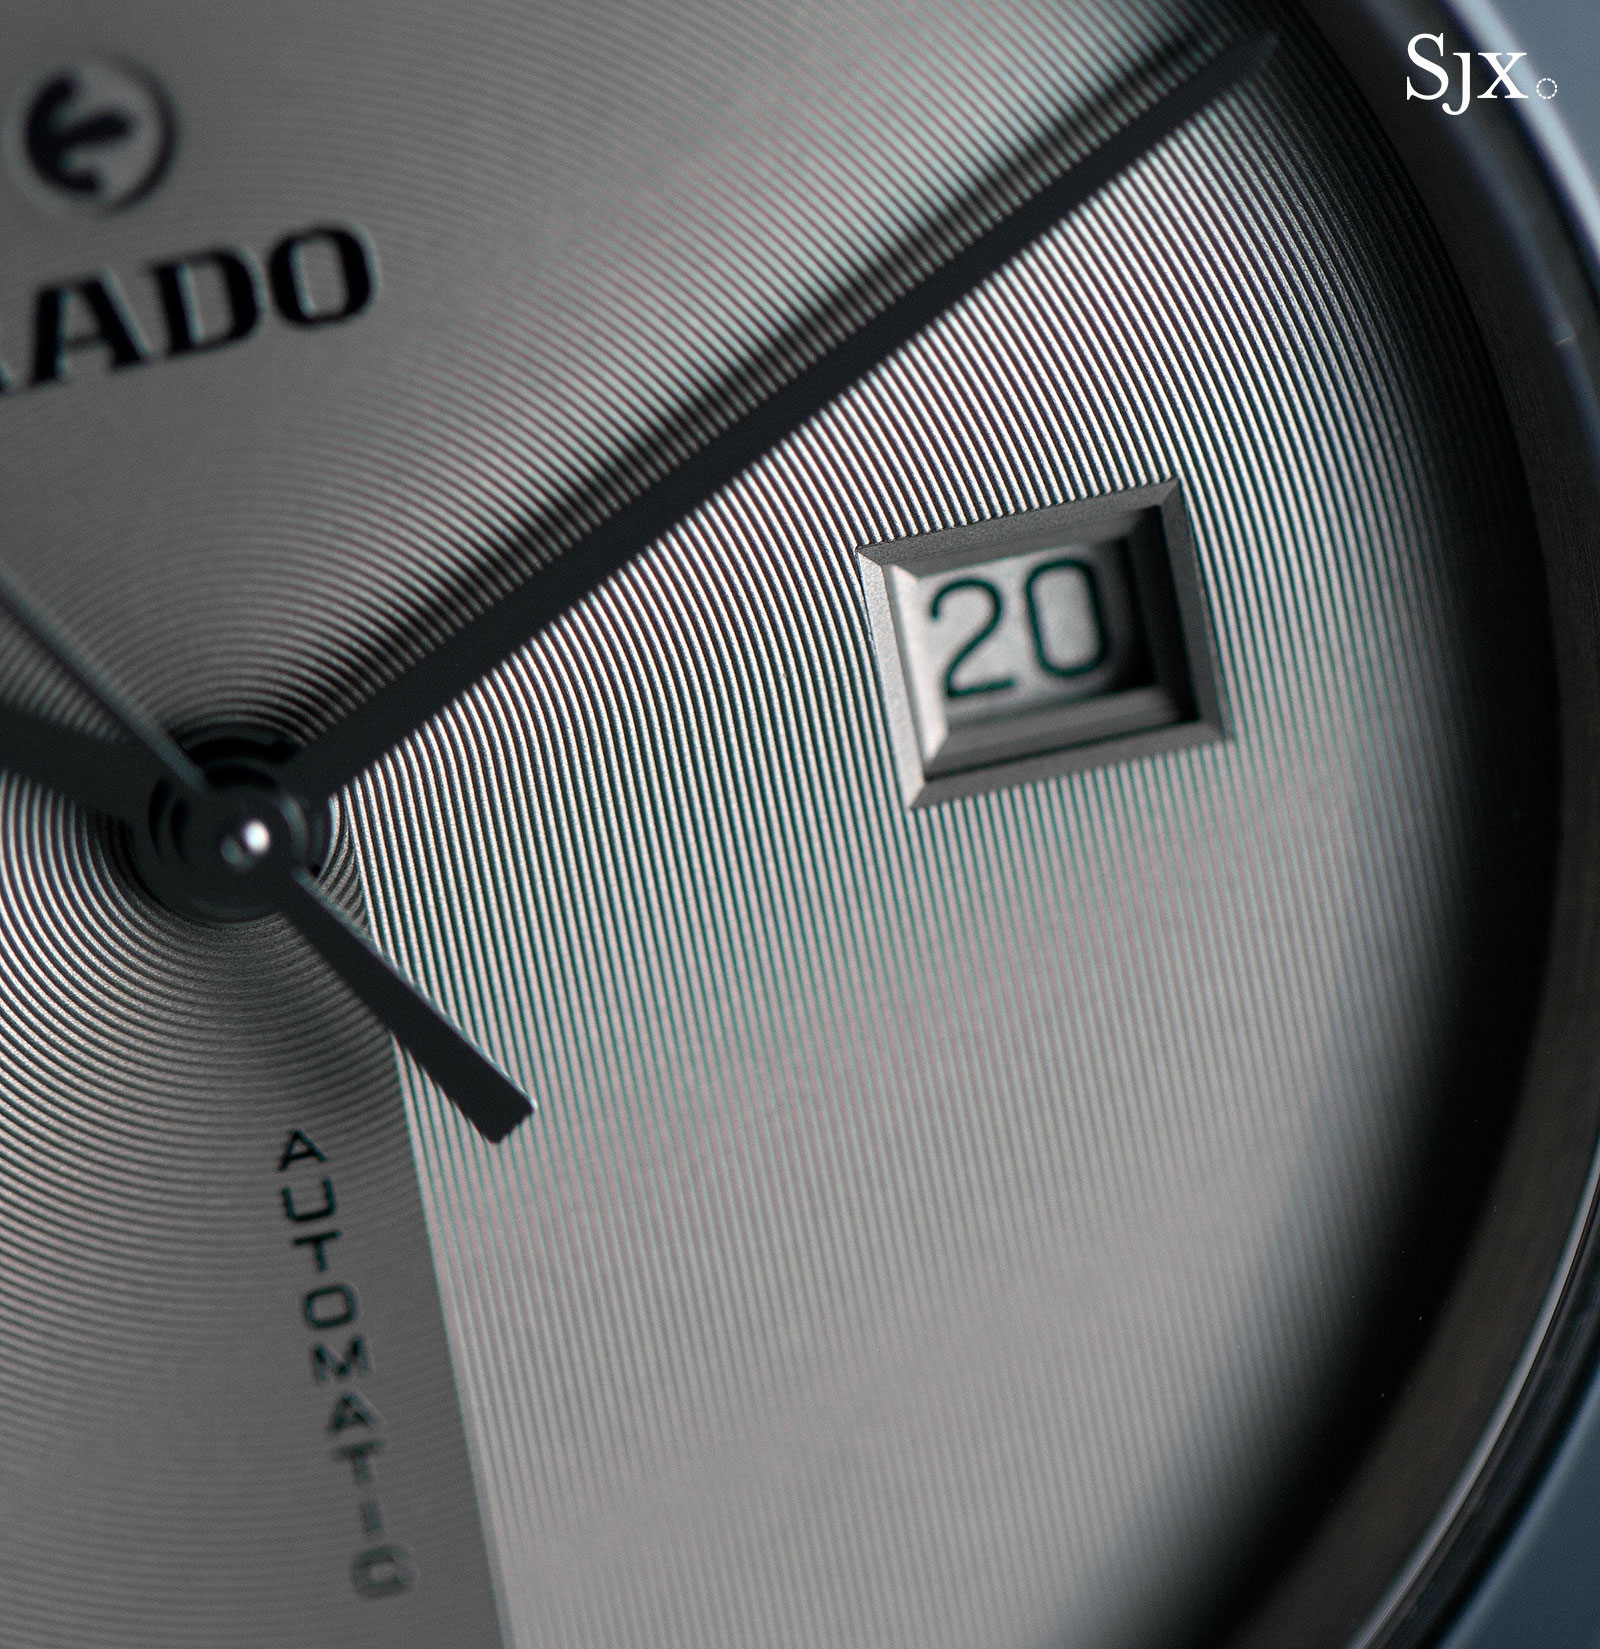 Hands-On with the Rado HyperChrome Ultra Light ...